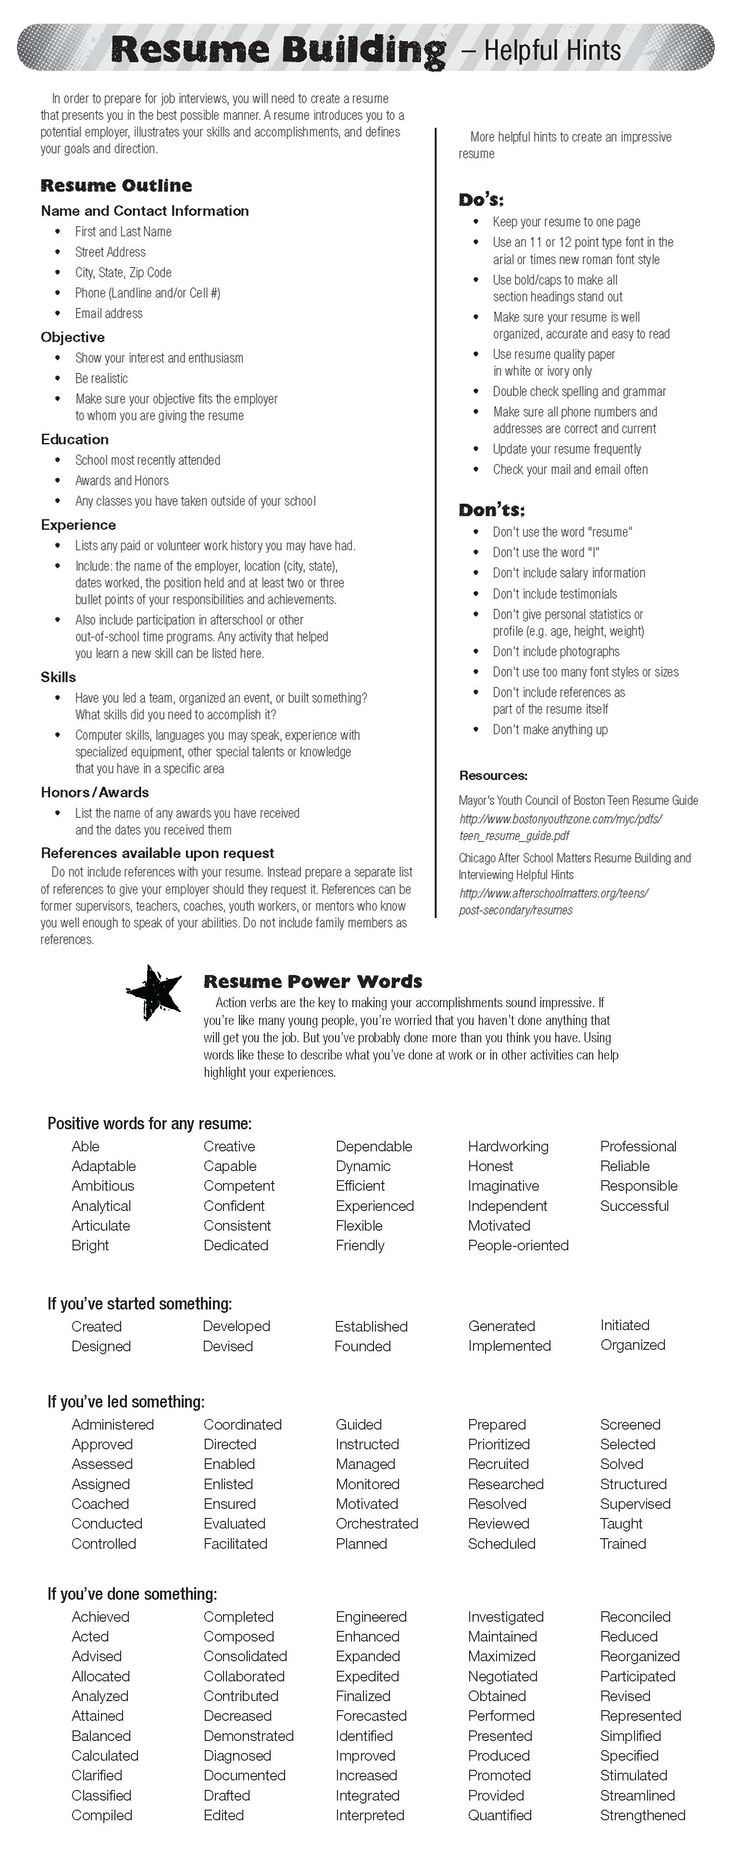 Opposenewapstandardsus  Ravishing  Ideas About Resume On Pinterest  Cv Format Resume  With Magnificent Check Out Todays Resume Building Tips Resume Resumepowerwords With Attractive Good Resume Example Also Nanny Resume Sample In Addition Office Clerk Resume And Salesperson Resume As Well As What A Good Resume Looks Like Additionally Sample Resume Cover Letters From Pinterestcom With Opposenewapstandardsus  Magnificent  Ideas About Resume On Pinterest  Cv Format Resume  With Attractive Check Out Todays Resume Building Tips Resume Resumepowerwords And Ravishing Good Resume Example Also Nanny Resume Sample In Addition Office Clerk Resume From Pinterestcom